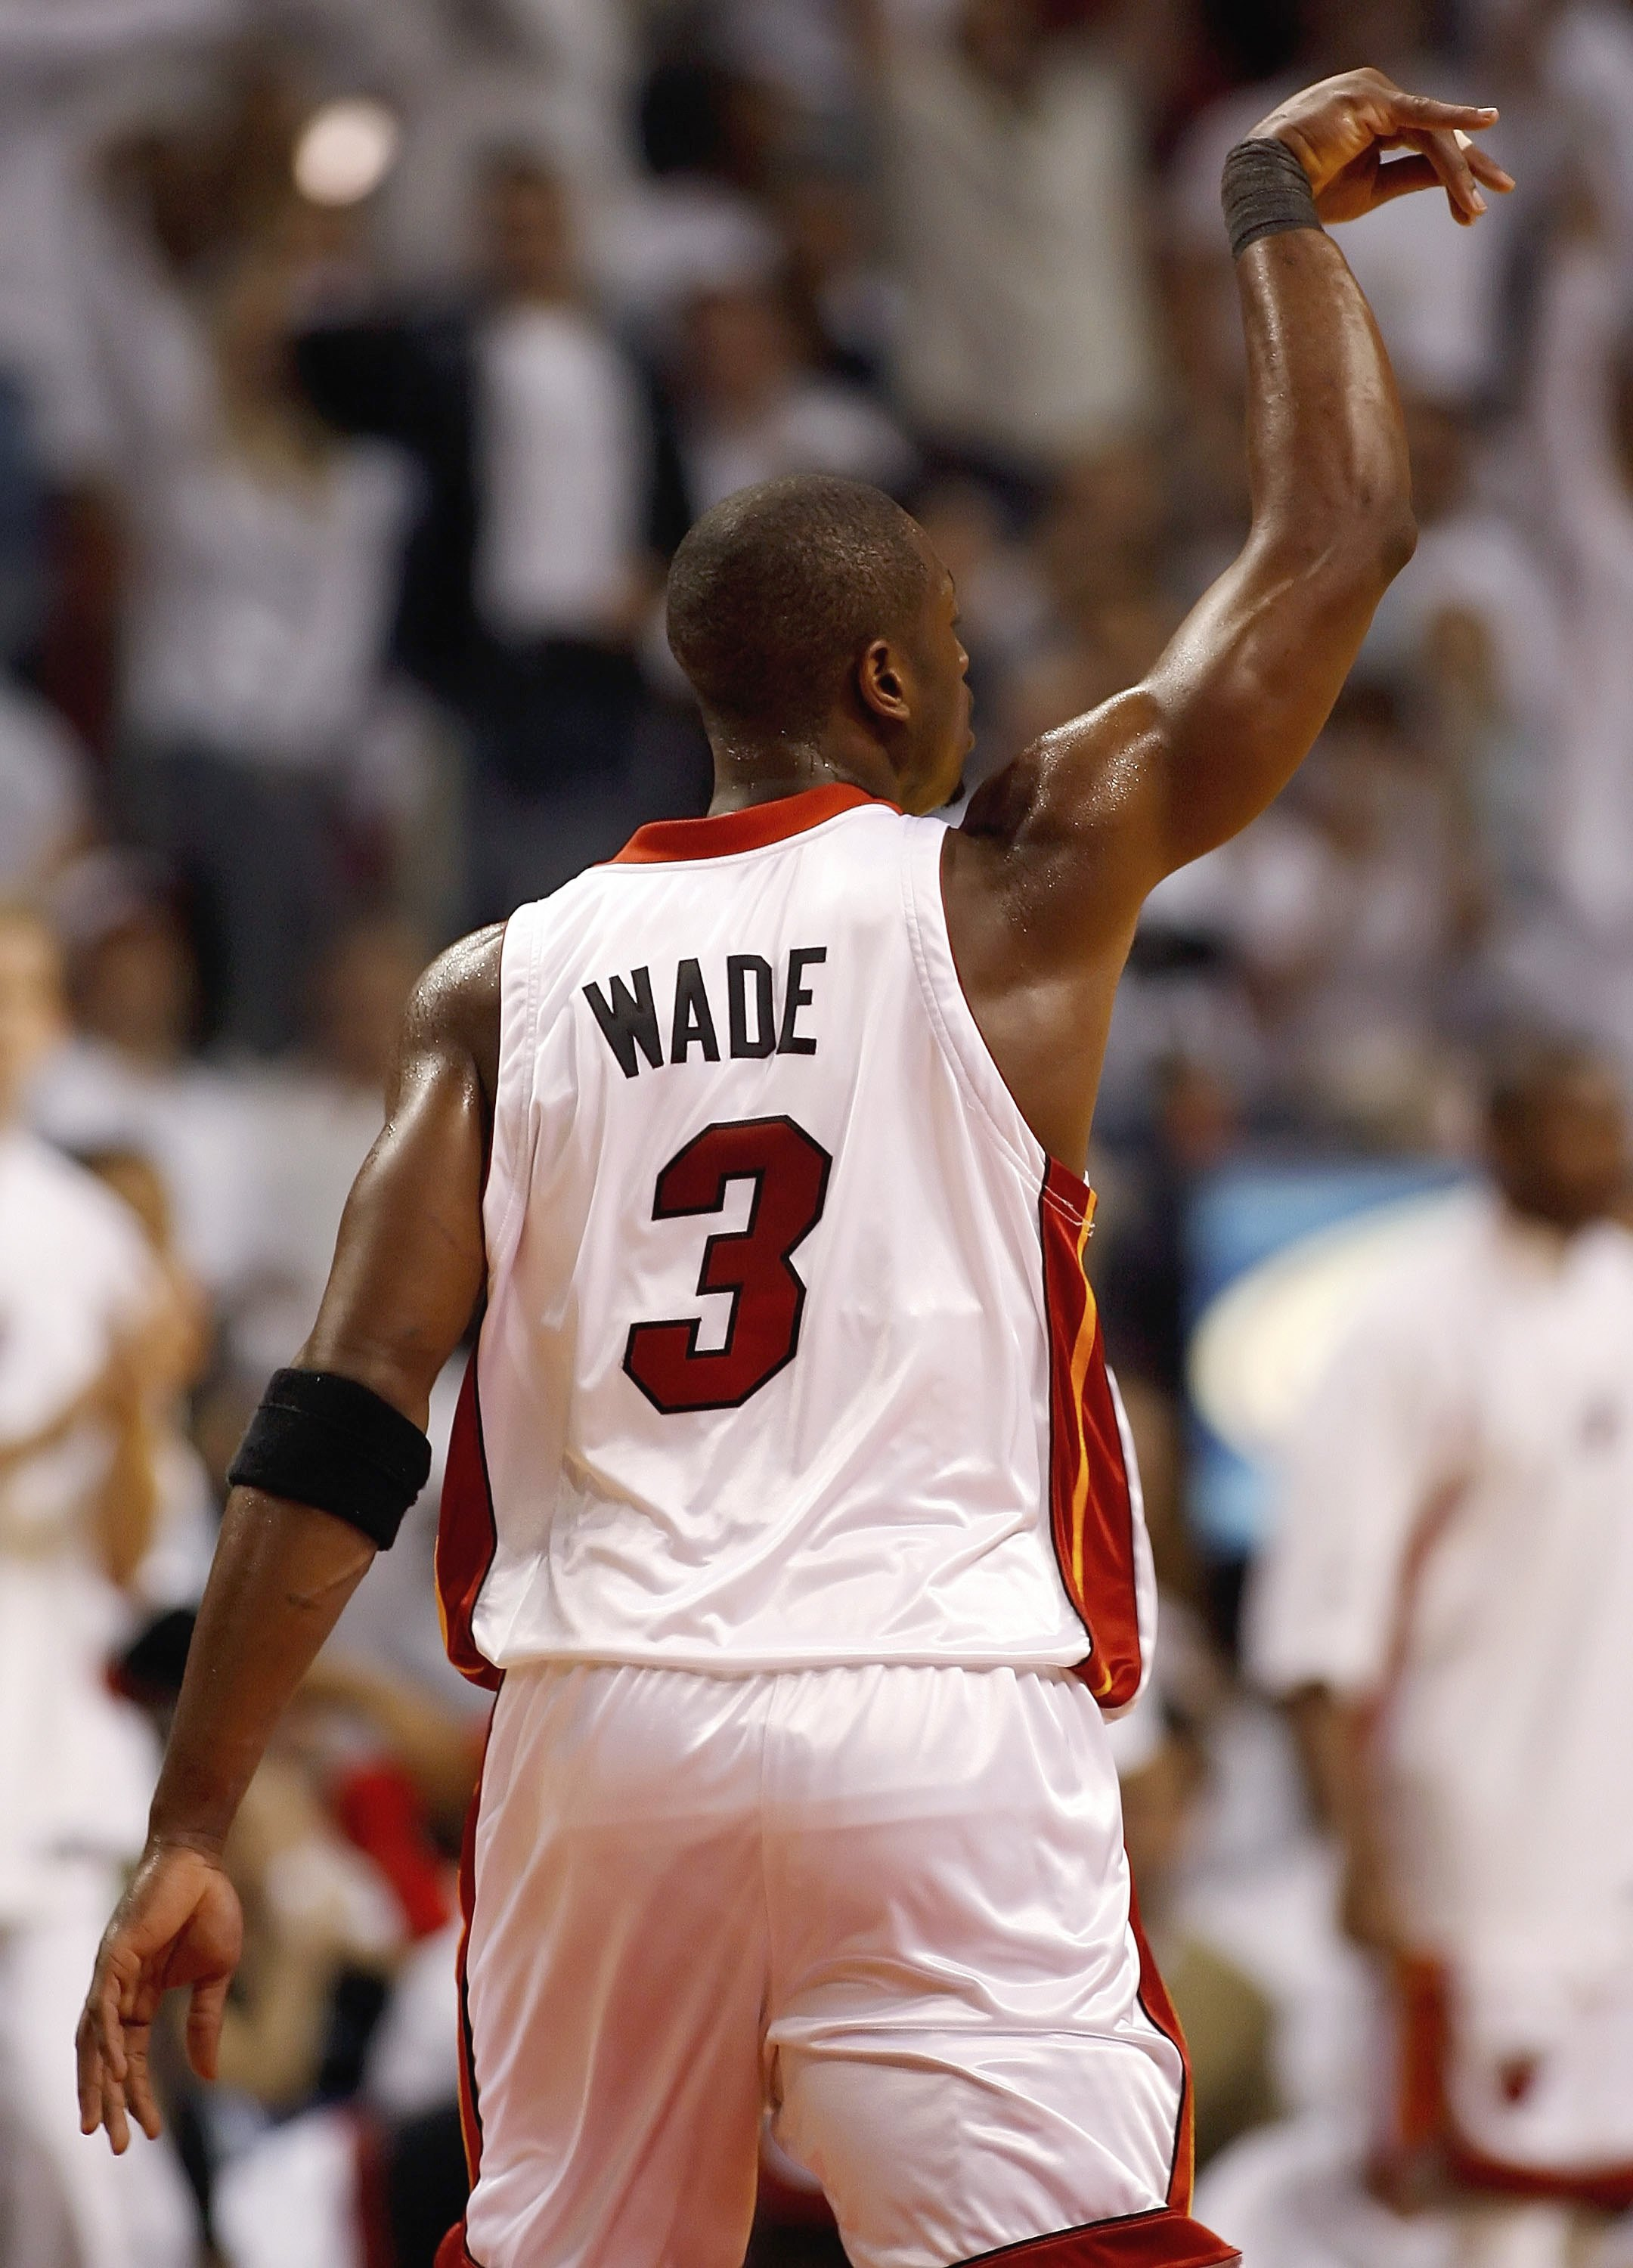 MIAMI - JUNE 2:  Dwyane Wade #3 of the Miami Heat reacts to a basket against the Detroit Pistons in game six of the Eastern Conference Finals during the 2006 NBA Playoffs on June 2, 2006 at American Airlines Arena in Miami, Florida.  NOTE TO USER: User ex